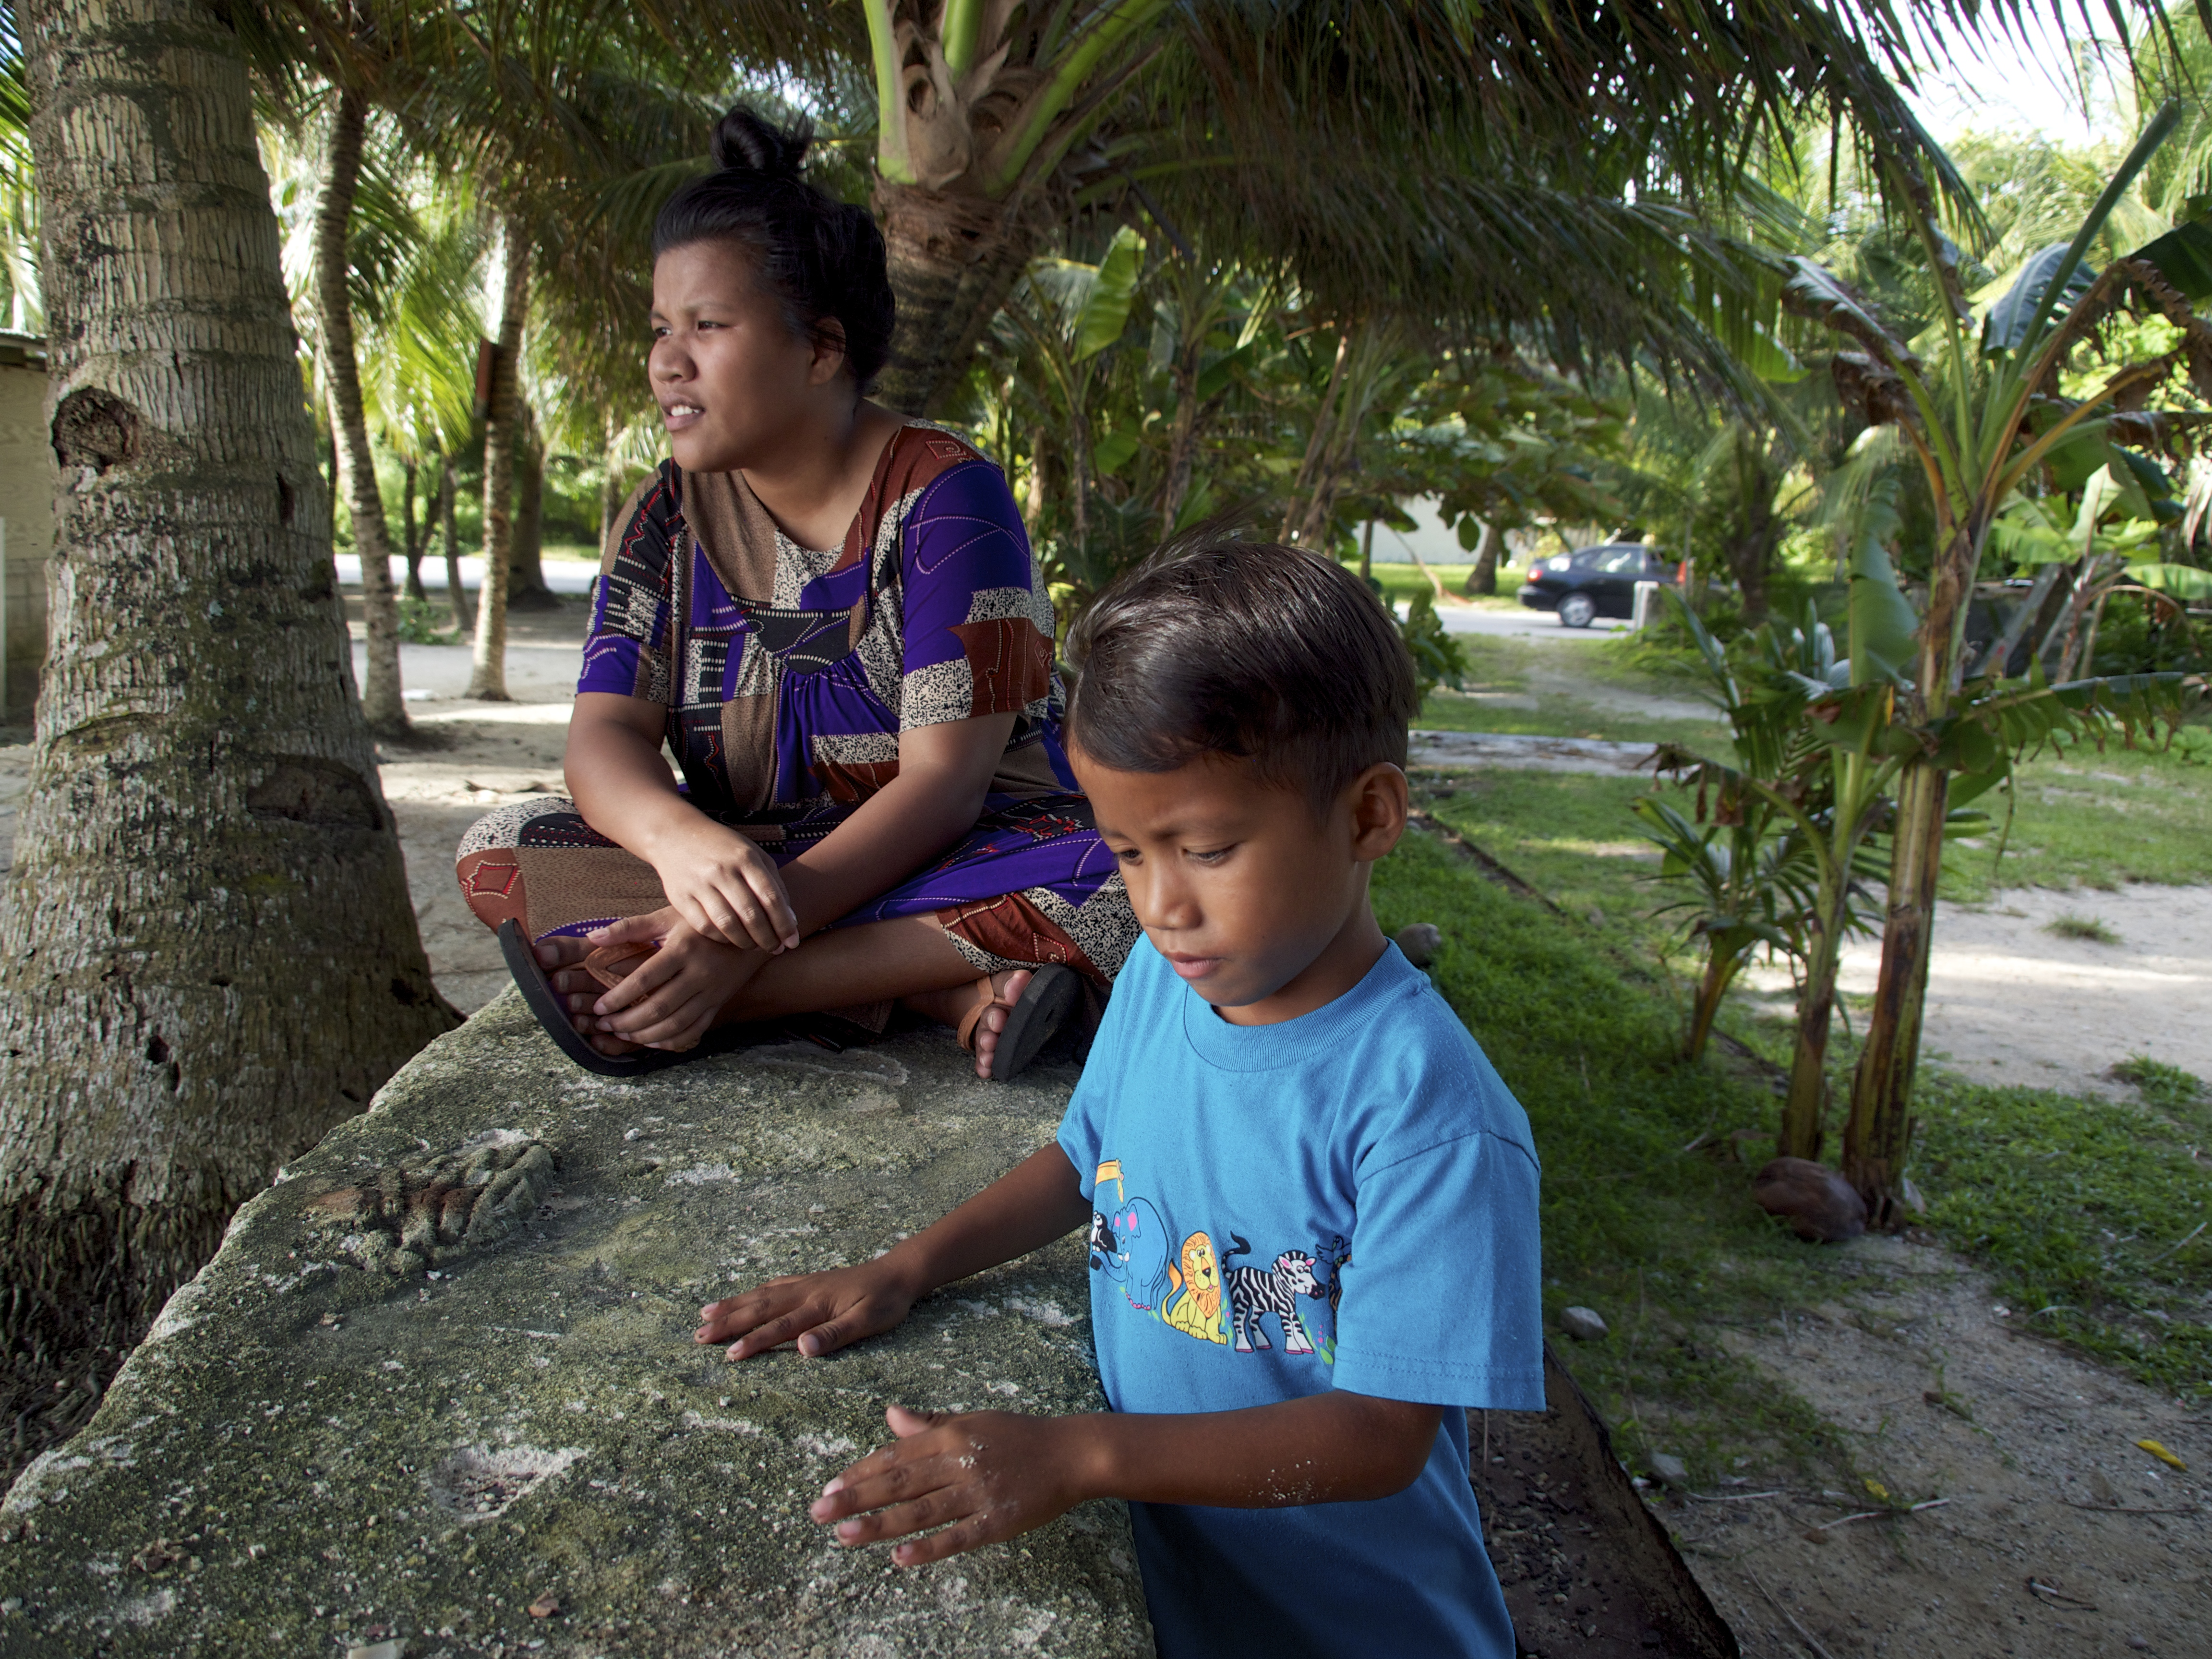 marshall islands dating sites Health information for travelers to marshall islandstraveler view you should be up to date on routine vaccinations while traveling to any destination cdc recommends this vaccine because you can get hepatitis a through contaminated food or water in the marshall islands, regardless of where you are.